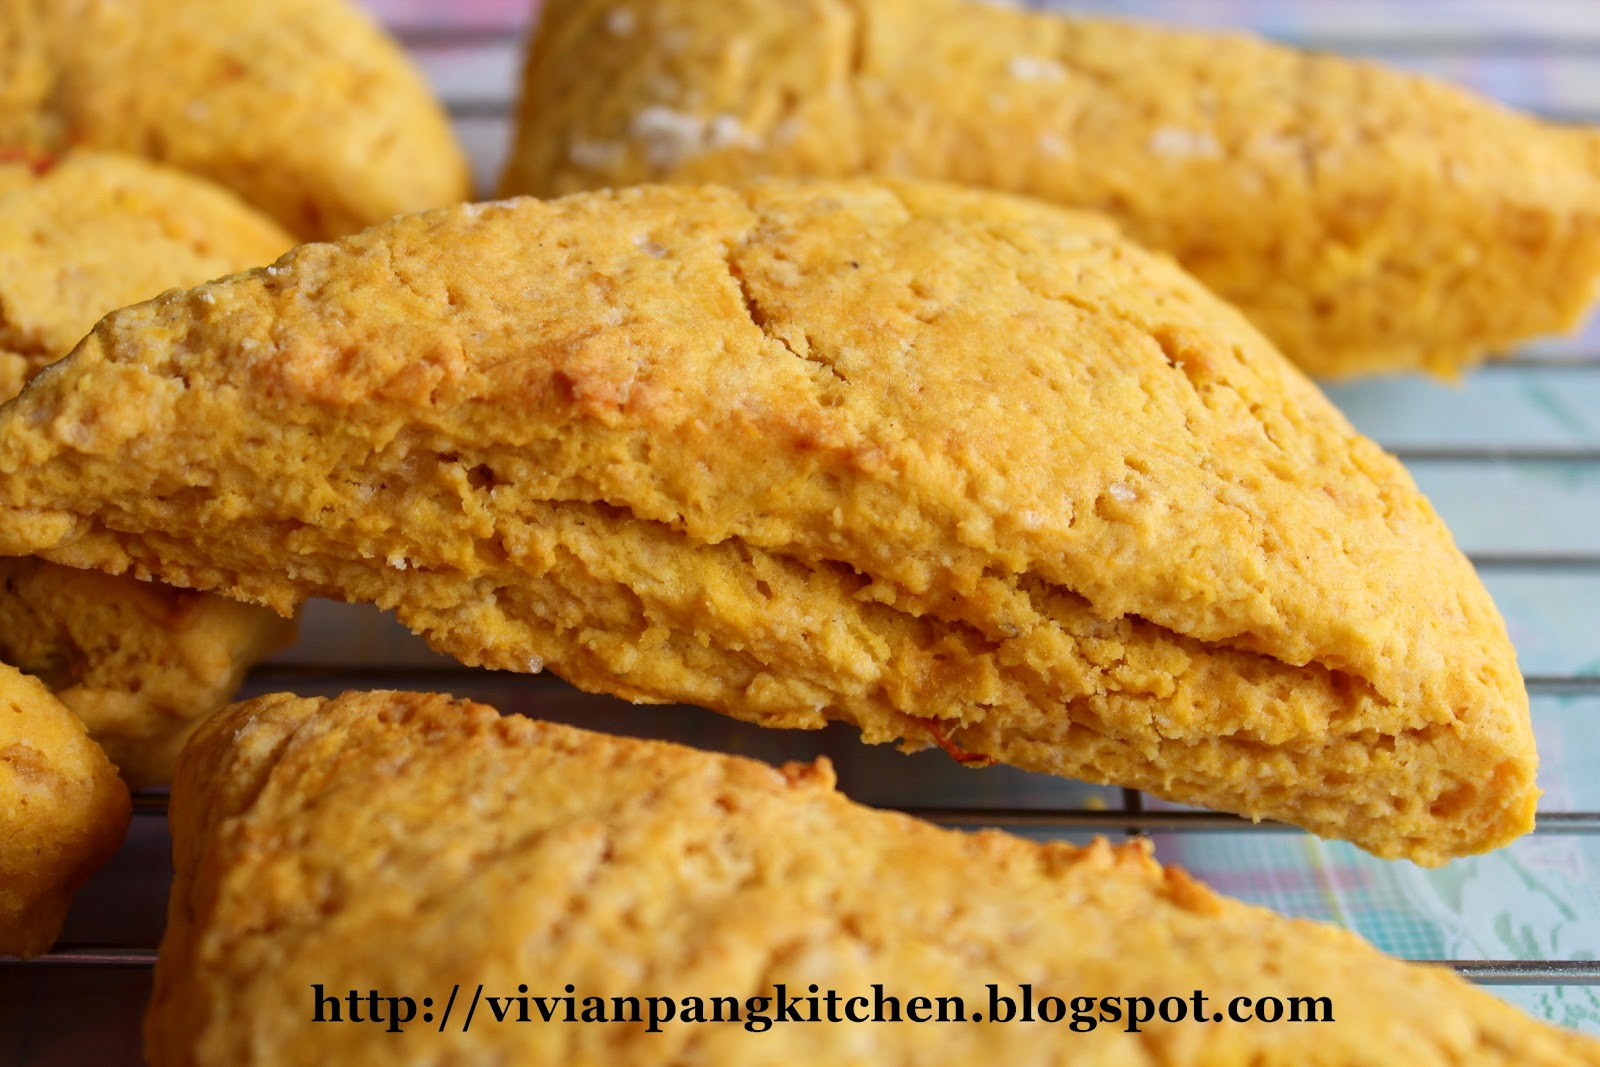 Vivian Pang Kitchen: Starbucks Pumpkin Scones